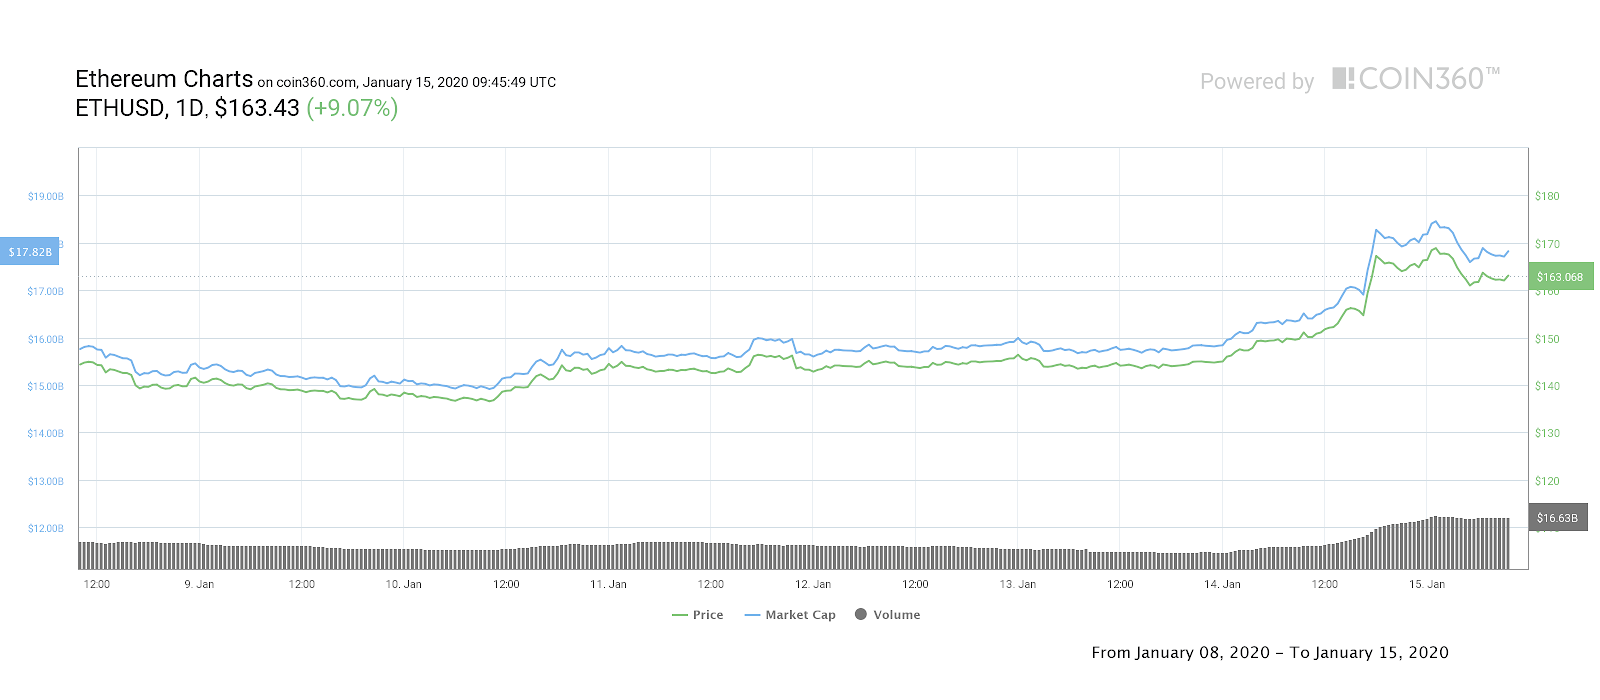 9de82ec2cded80ff15b3a0e4f0f0e479 - Bitcoin Price 'Cools Off' at 8.7K After Best January Gains Since 2012